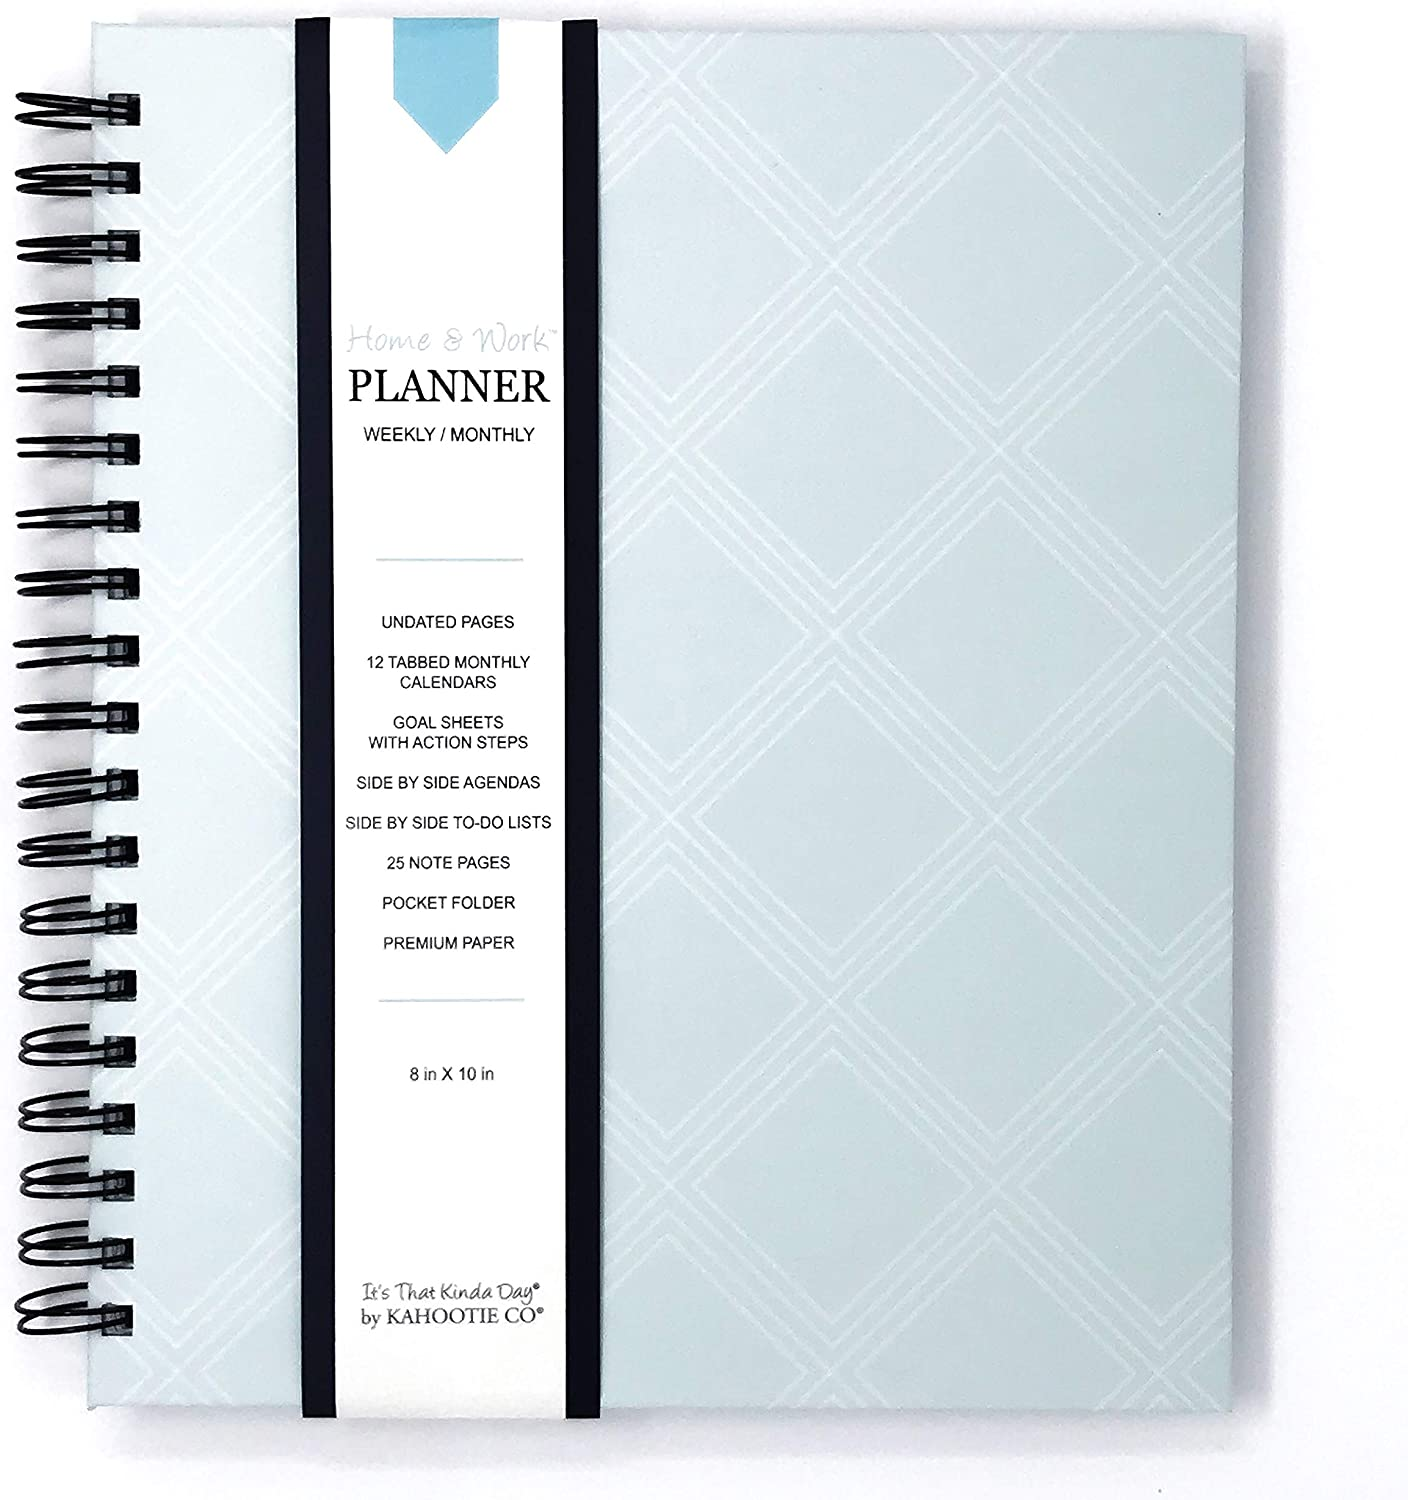 Home & Work Weekly/Monthly Planner by Kahootie Co - Stay Organized, Achieve Your Goals and Create Balance at Both Home and Work(Teal)